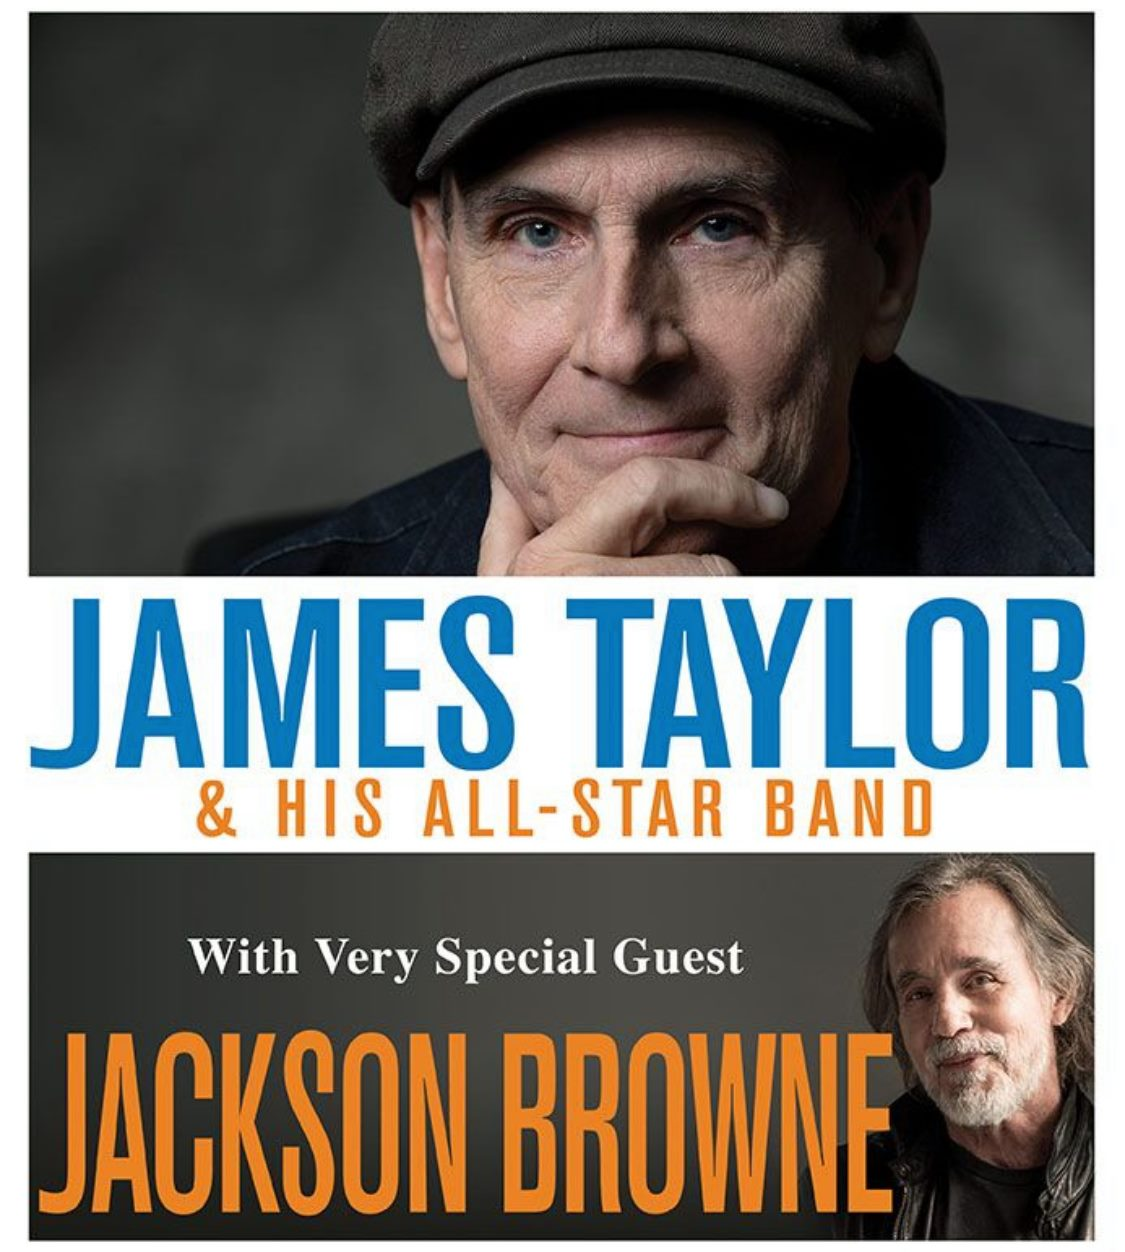 Best New Bands 2021 James Taylor Resets Tours With Browne, Raitt to 2021   Best